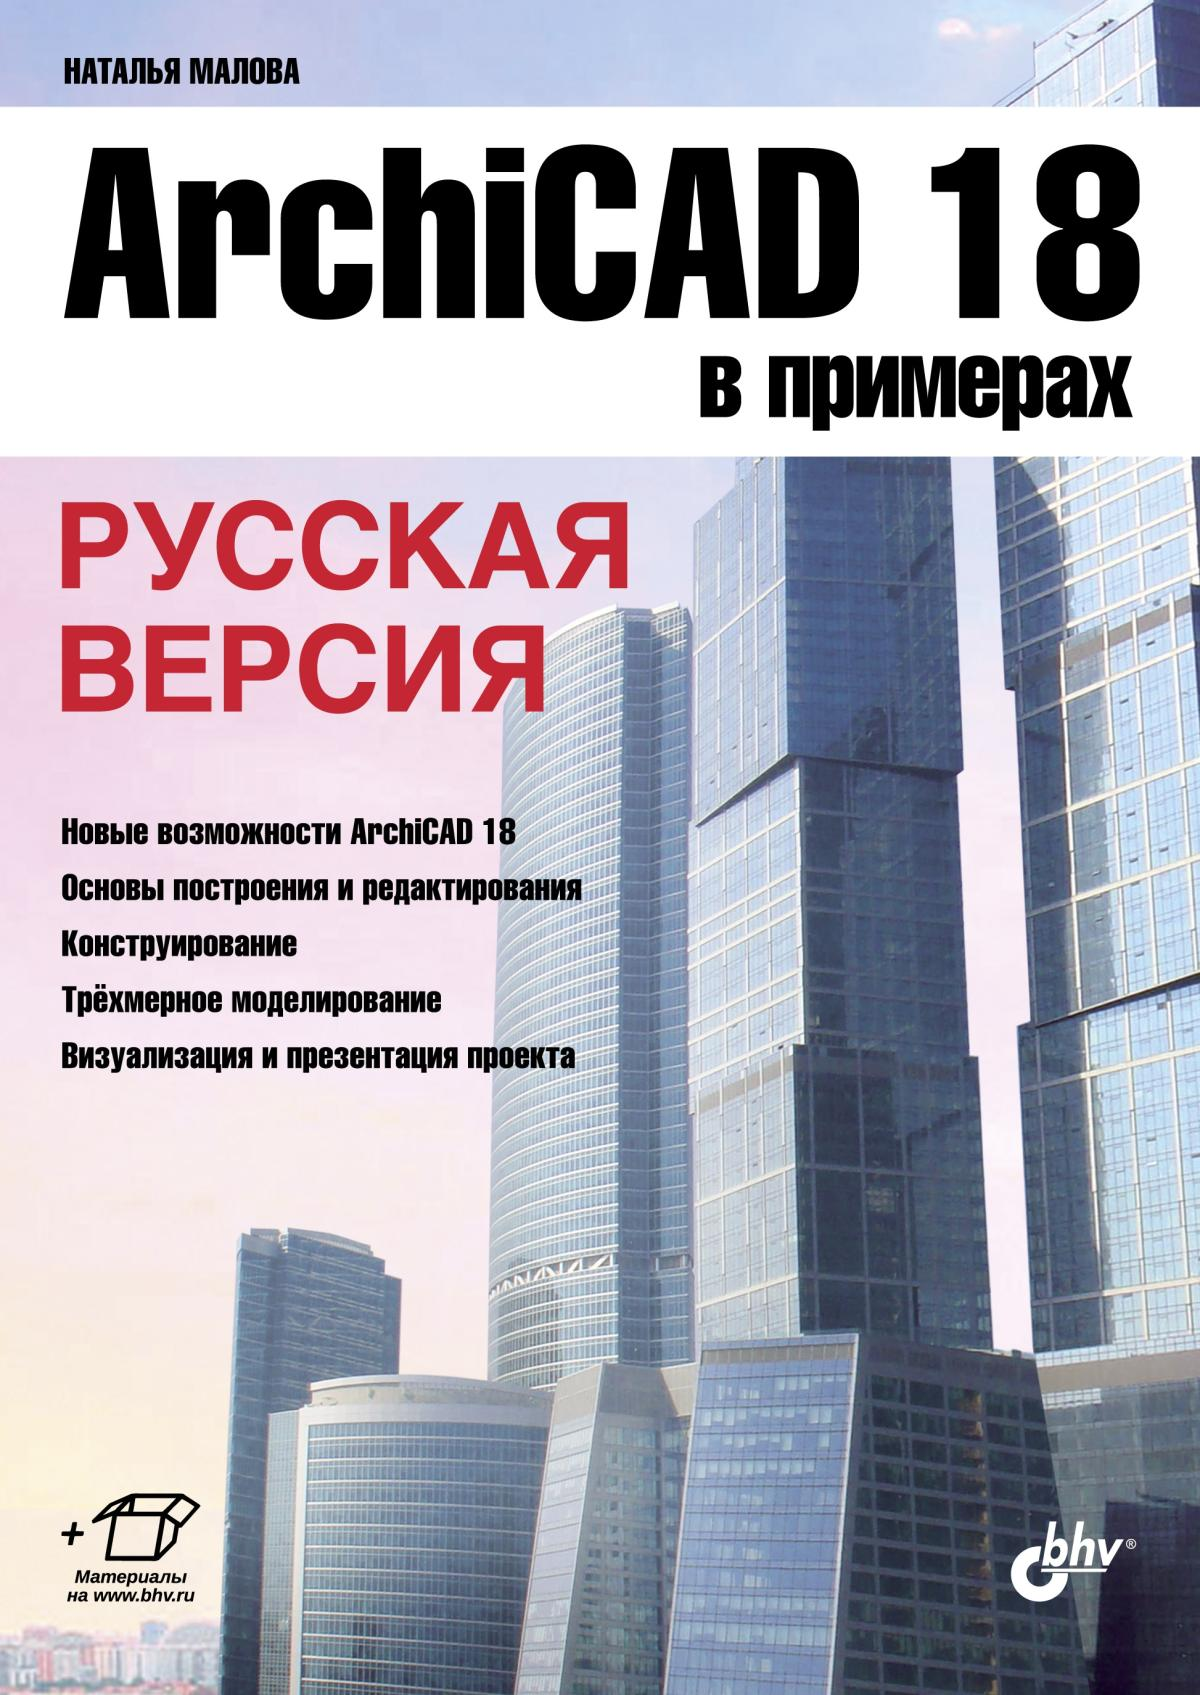 Cover ArchiCAD 18 in the examples